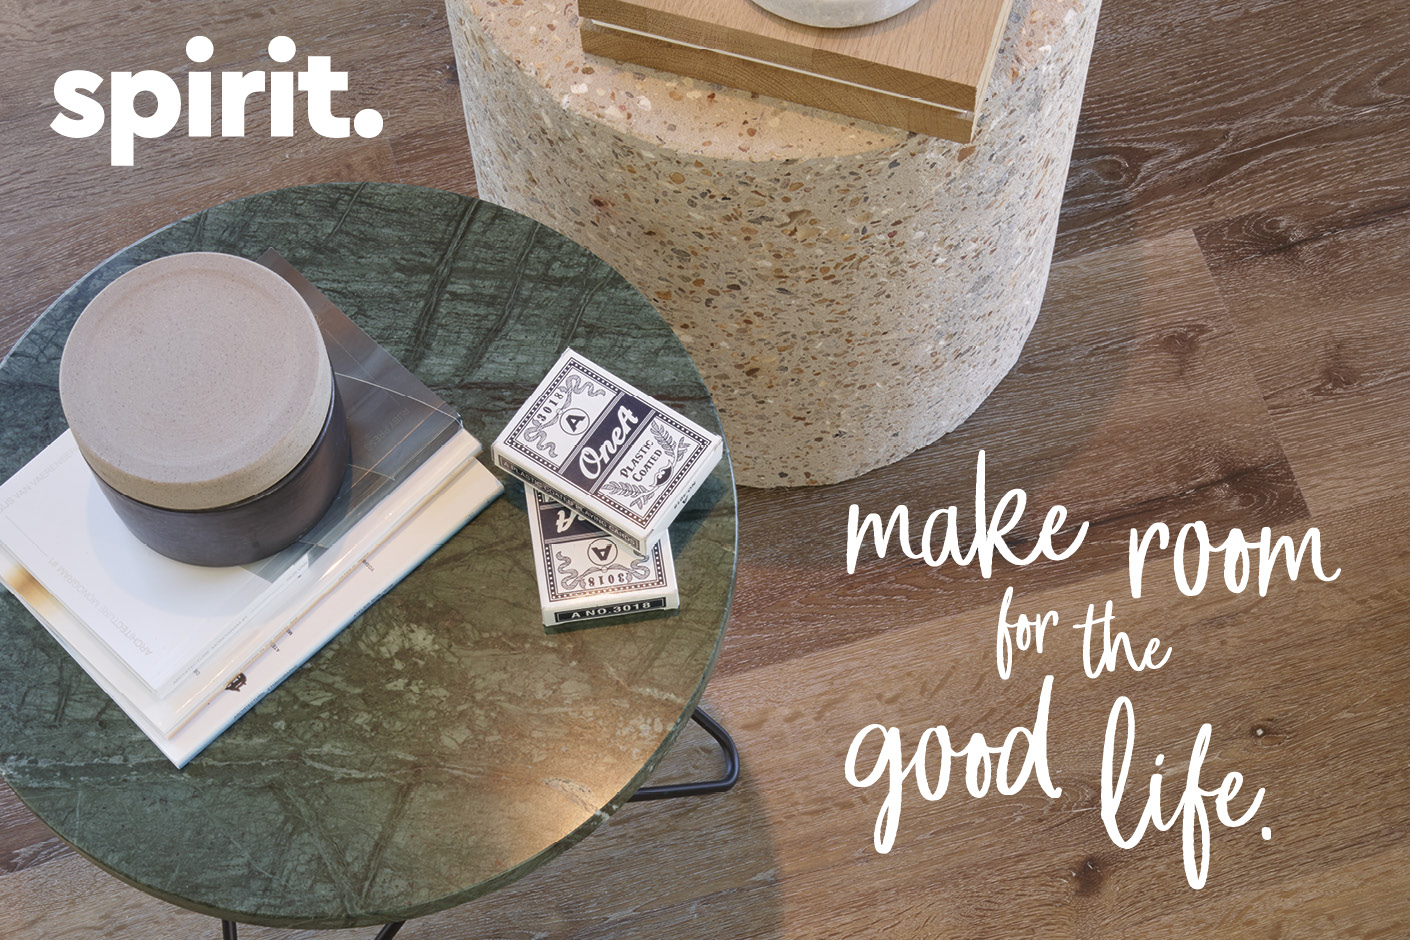 Spirit - Make room for the good life